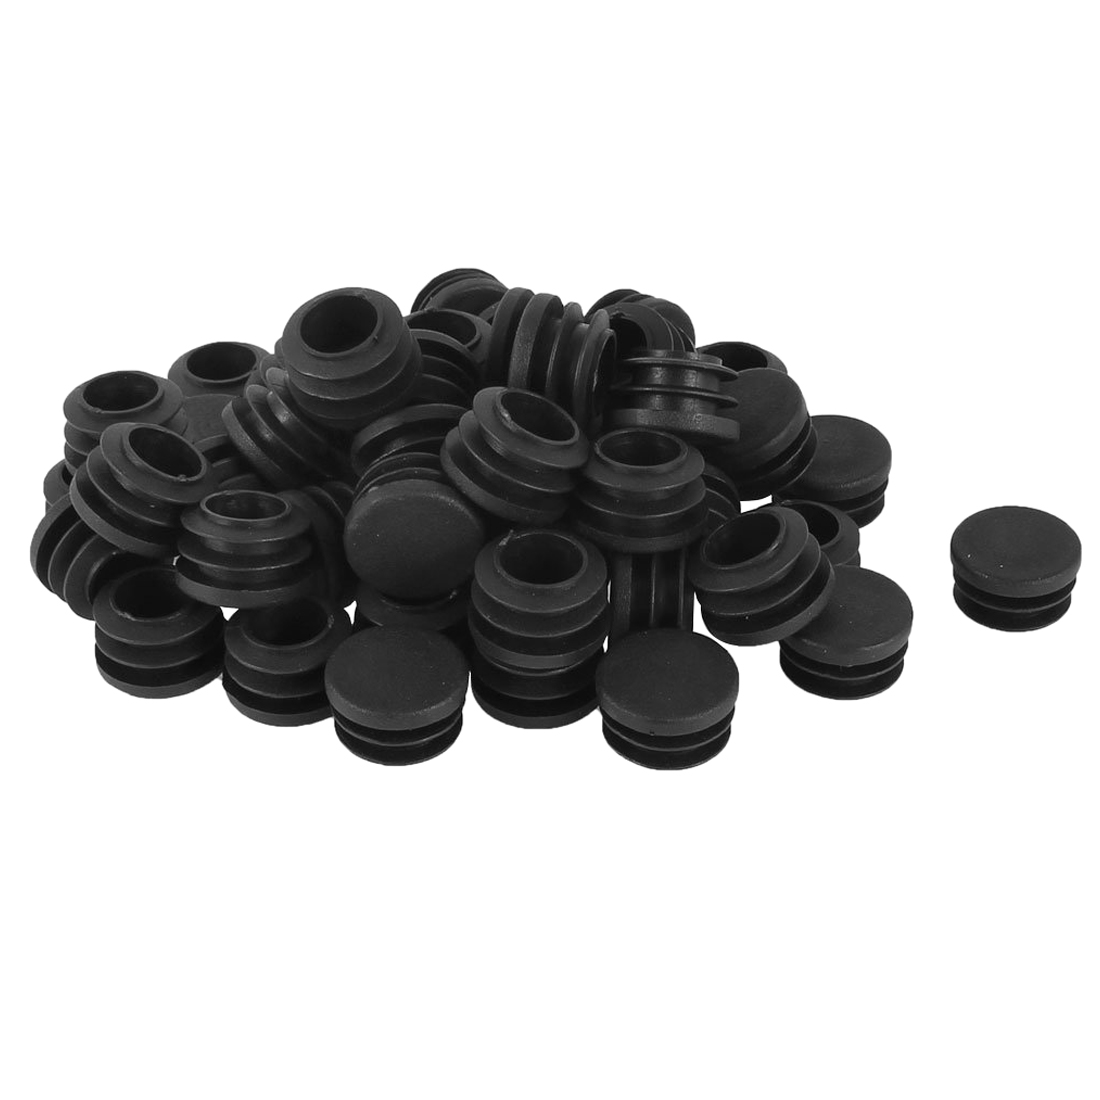 Plastic Round Cap Chair Table Legs Ribbed Tube Insert 22mm Dia 50 Pcs